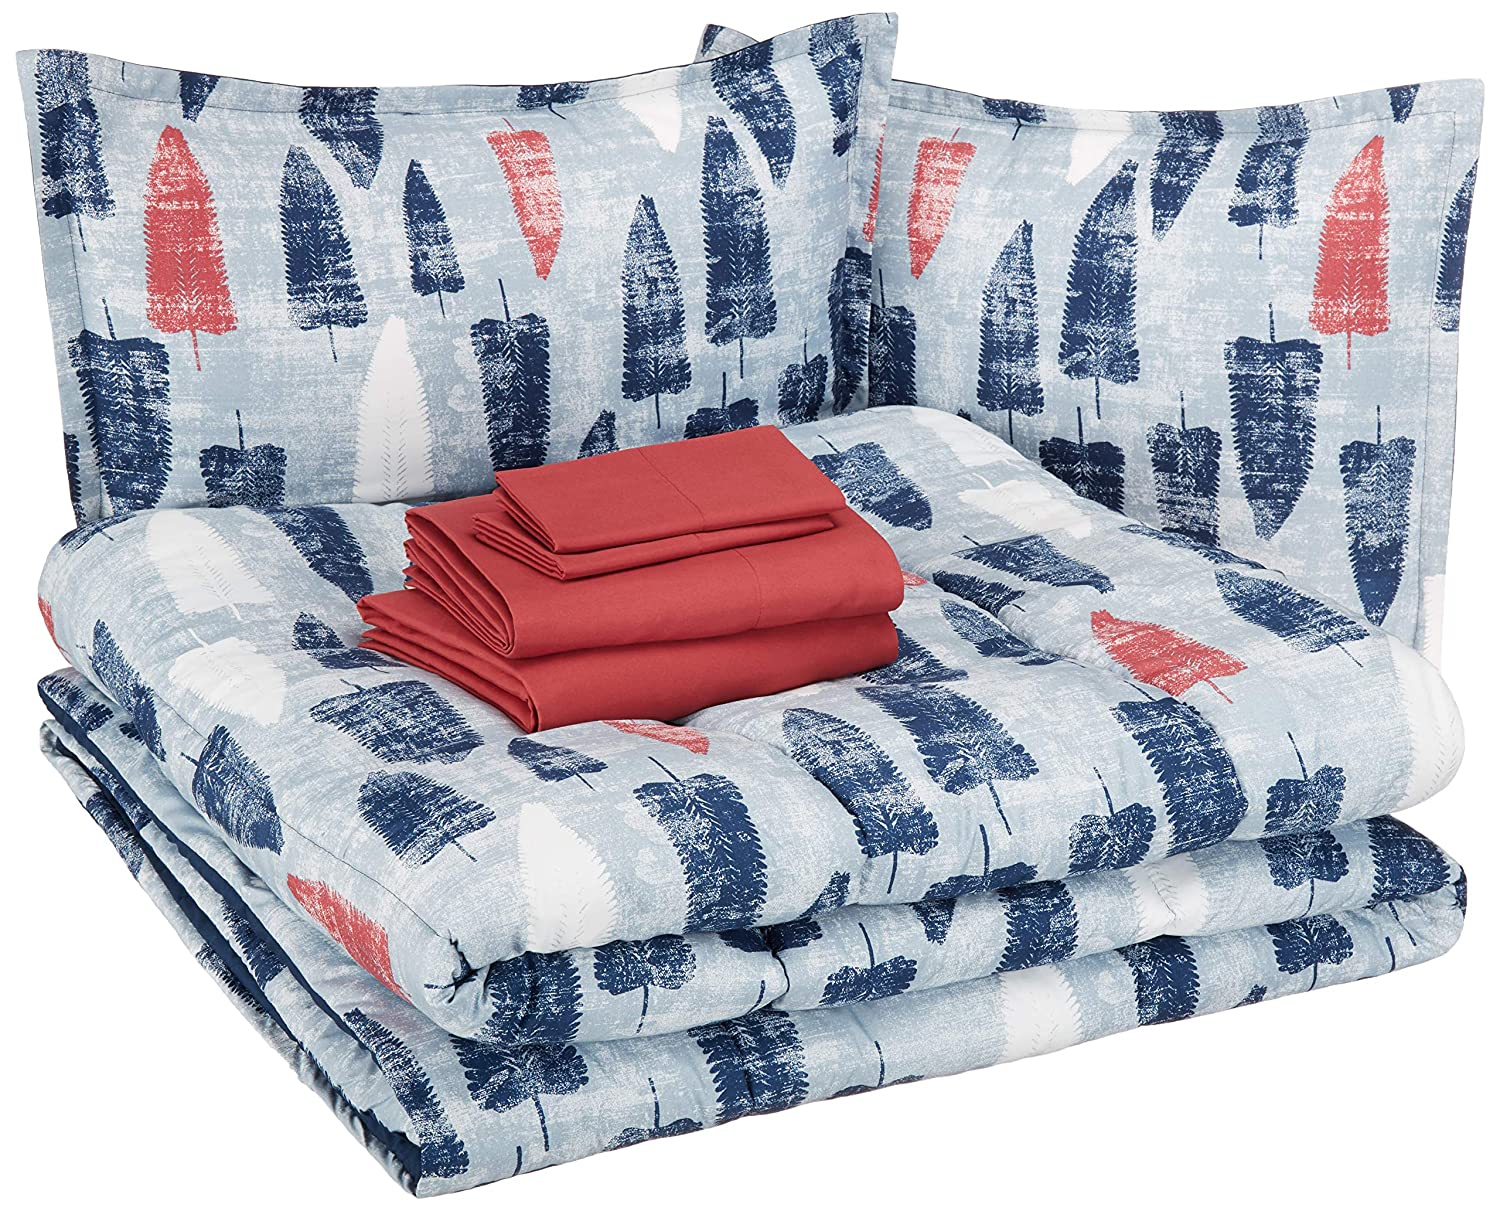 AmazonBasics Easy-Wash Microfiber Kid's Bed-in-a-Bag Bedding Set - Full / Queen, Red and Blue Feathers